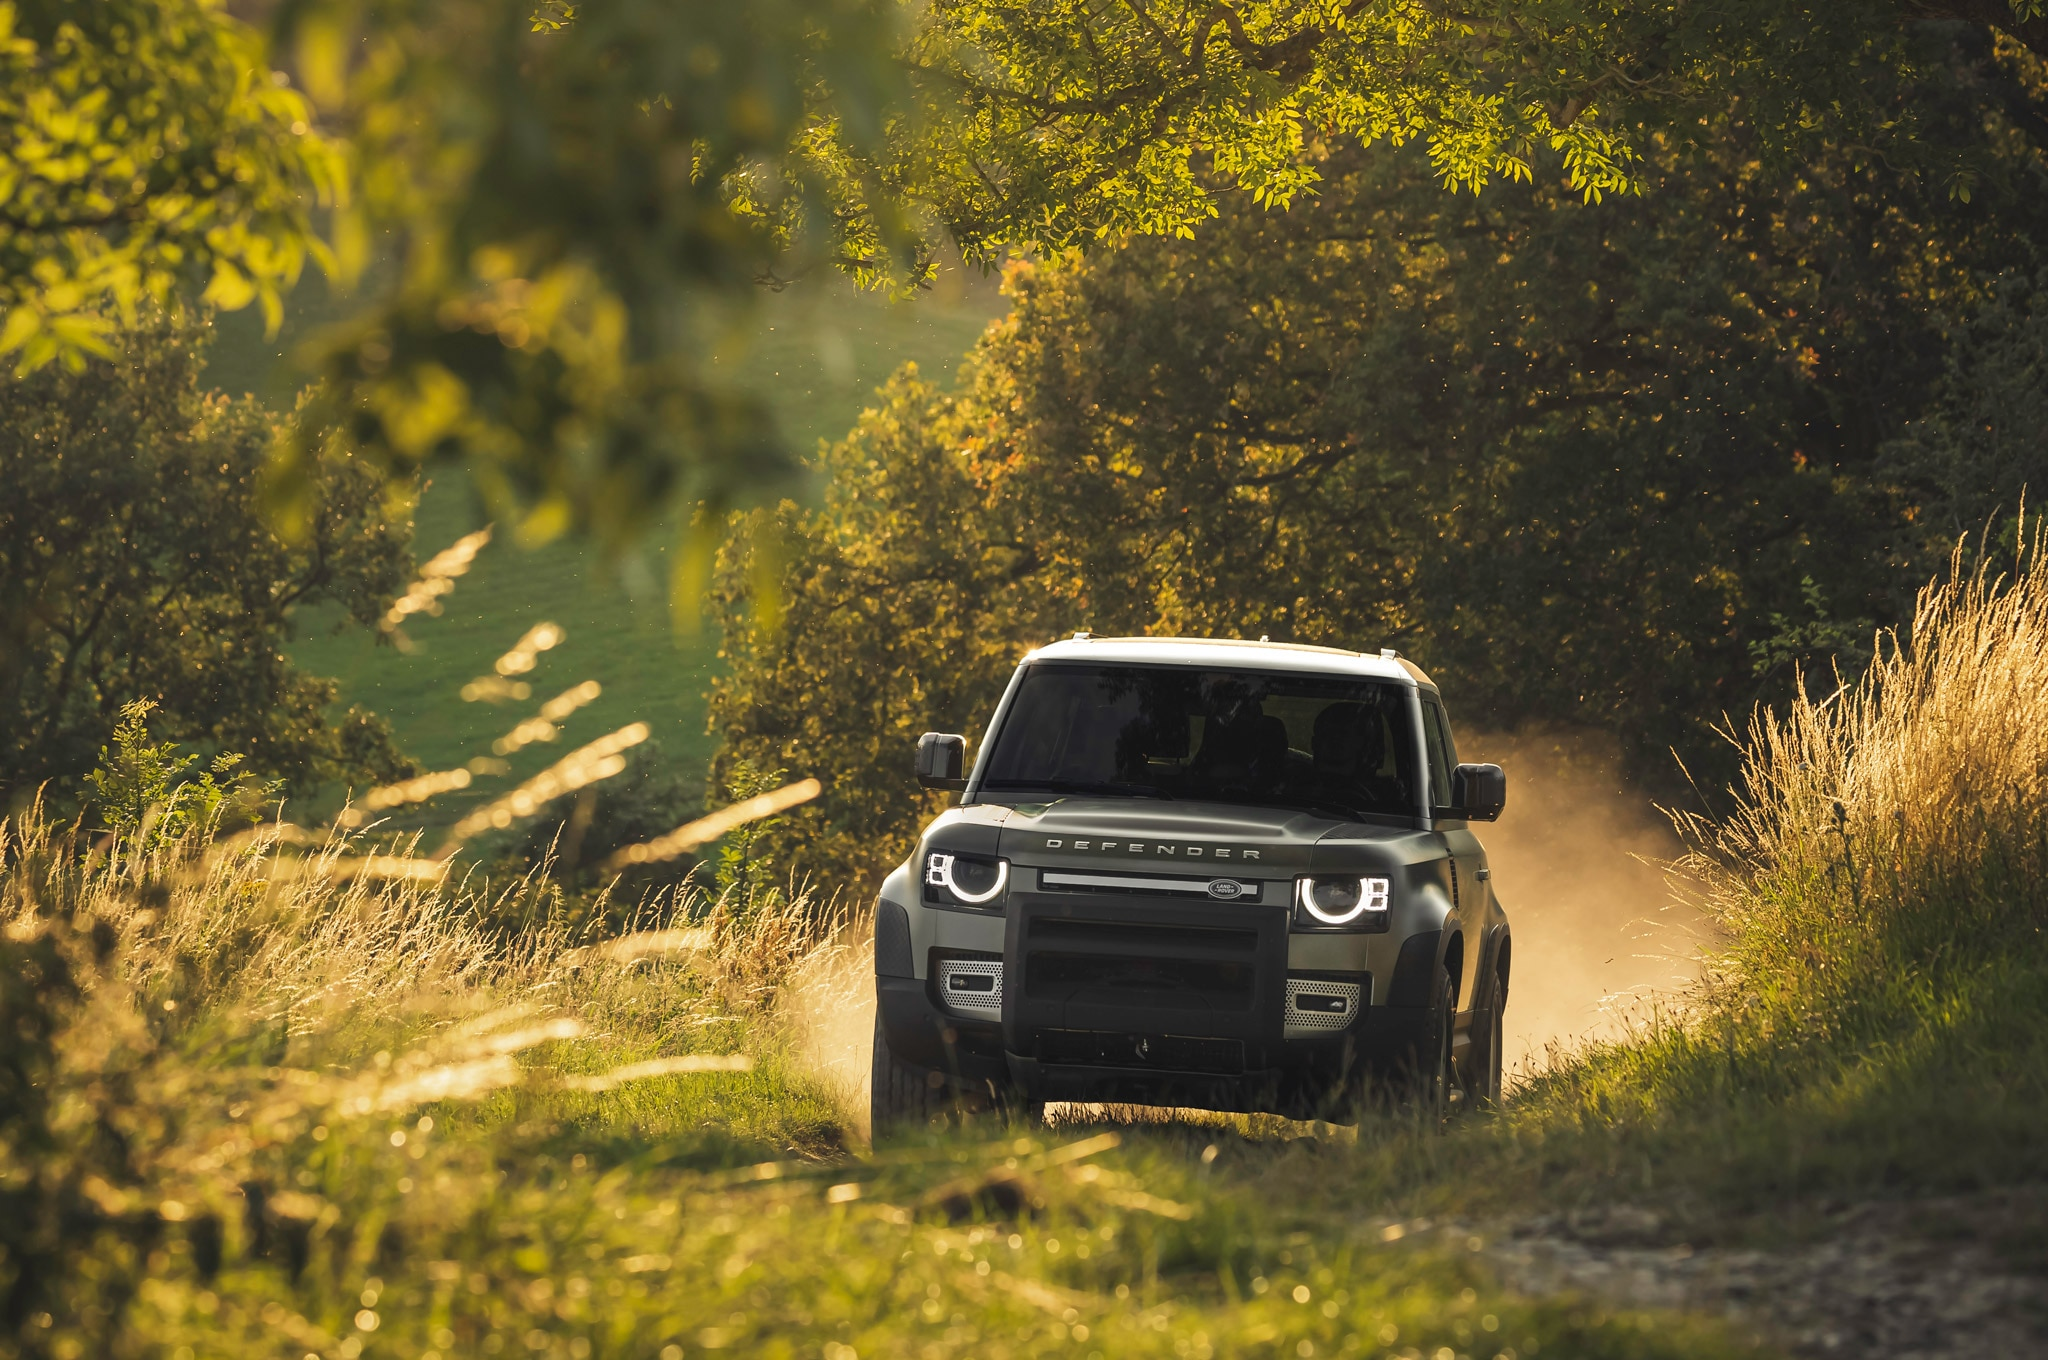 2020 land rover defender 90 off road dirt 01